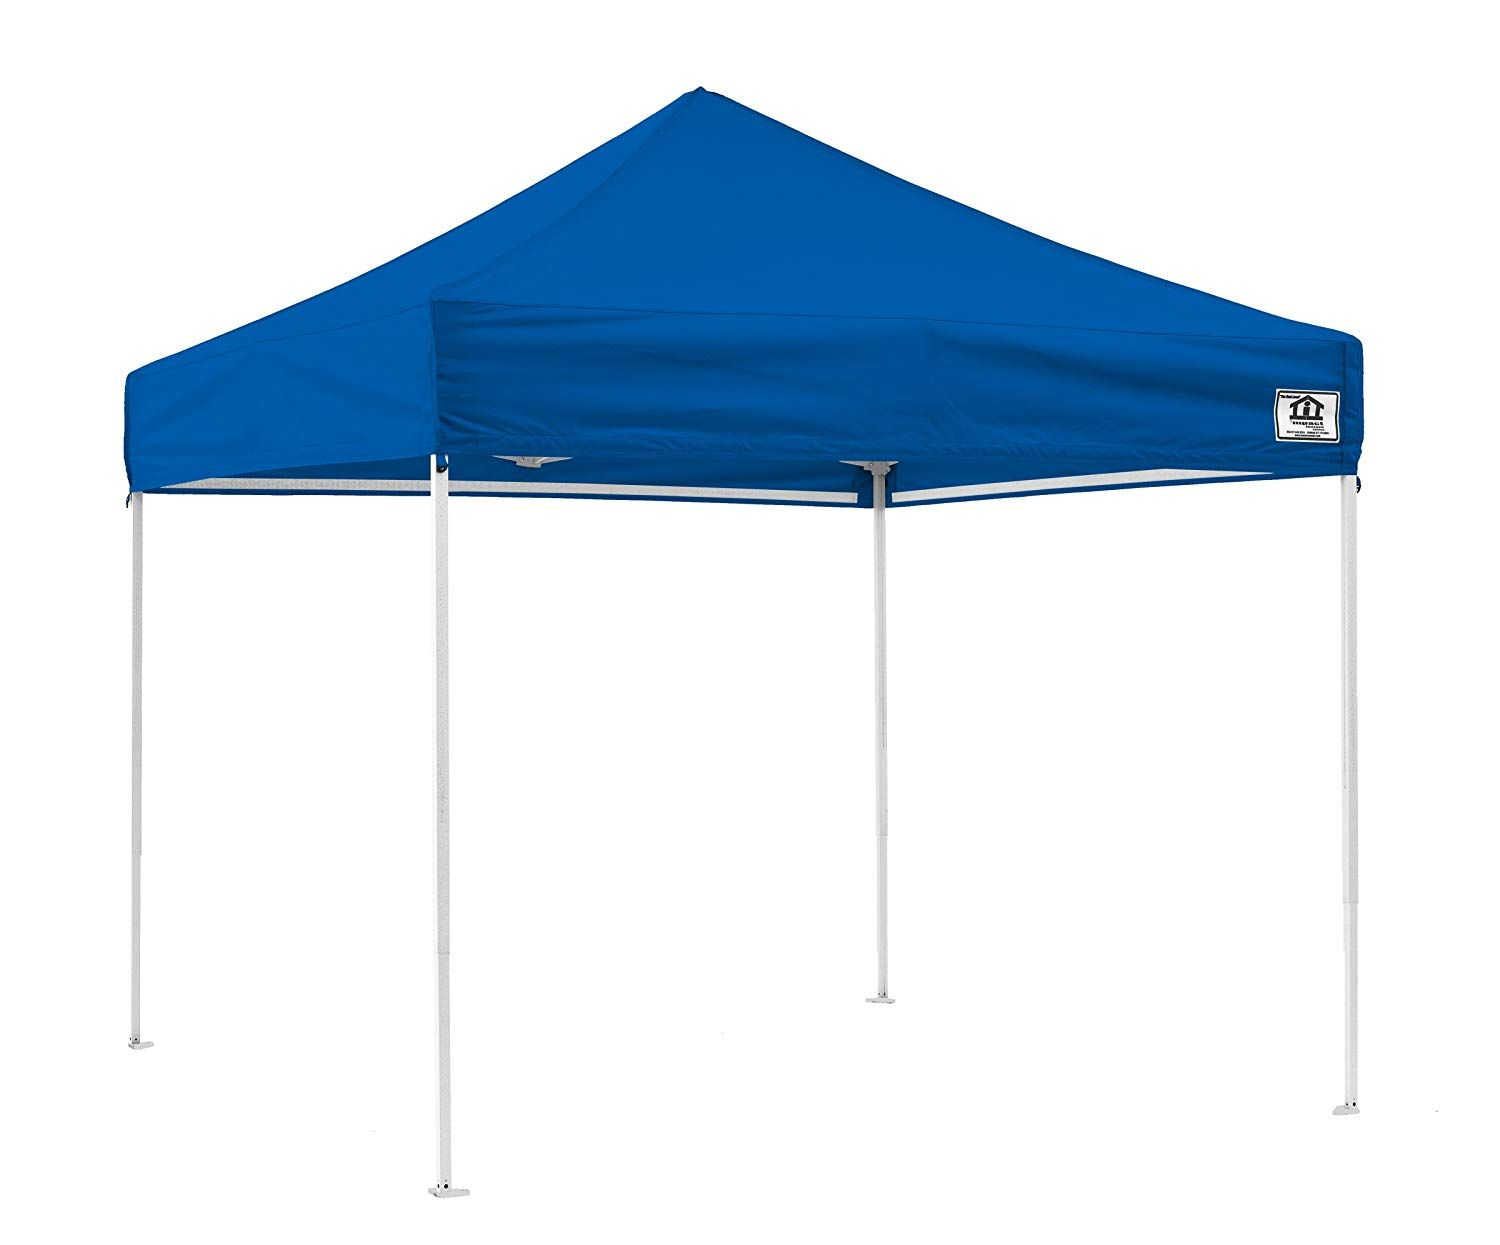 Impact Canopy 10 X 10 Pop Up Canopy Tent Straight Leg Shelter Steel Frame Uv Coated Roller Bag Royal Blue Walmart Com In 2020 Canopy Tent Outdoor Canopy Tent Gazebo